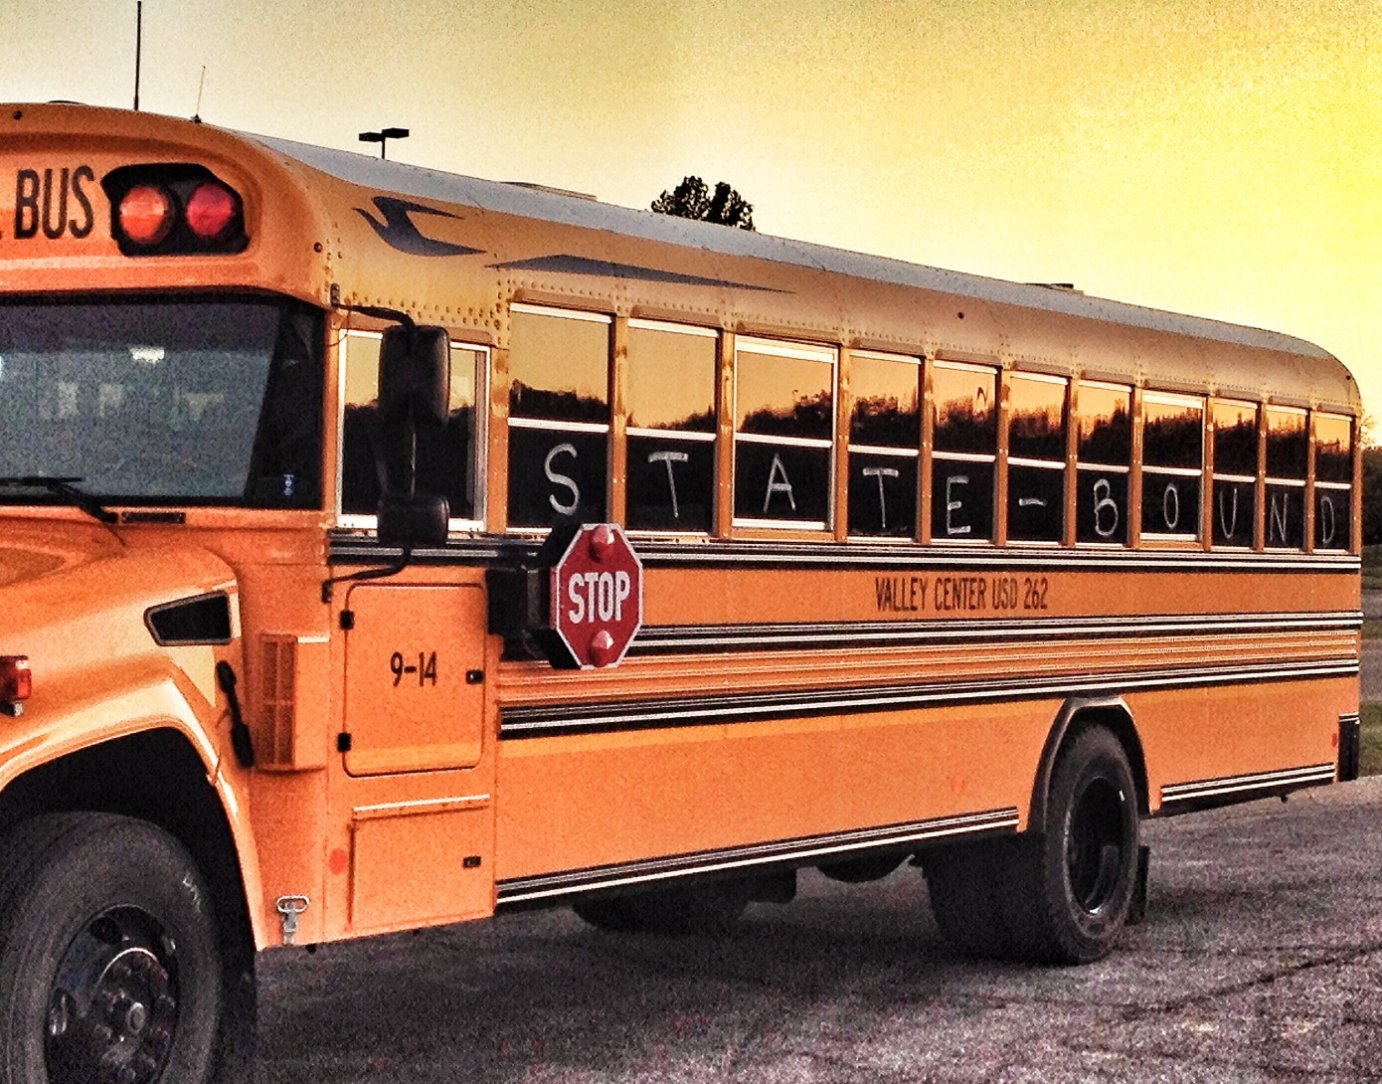 Typical Kansas school bus; this one's from Valley Center. (Photo by J. Schafer)